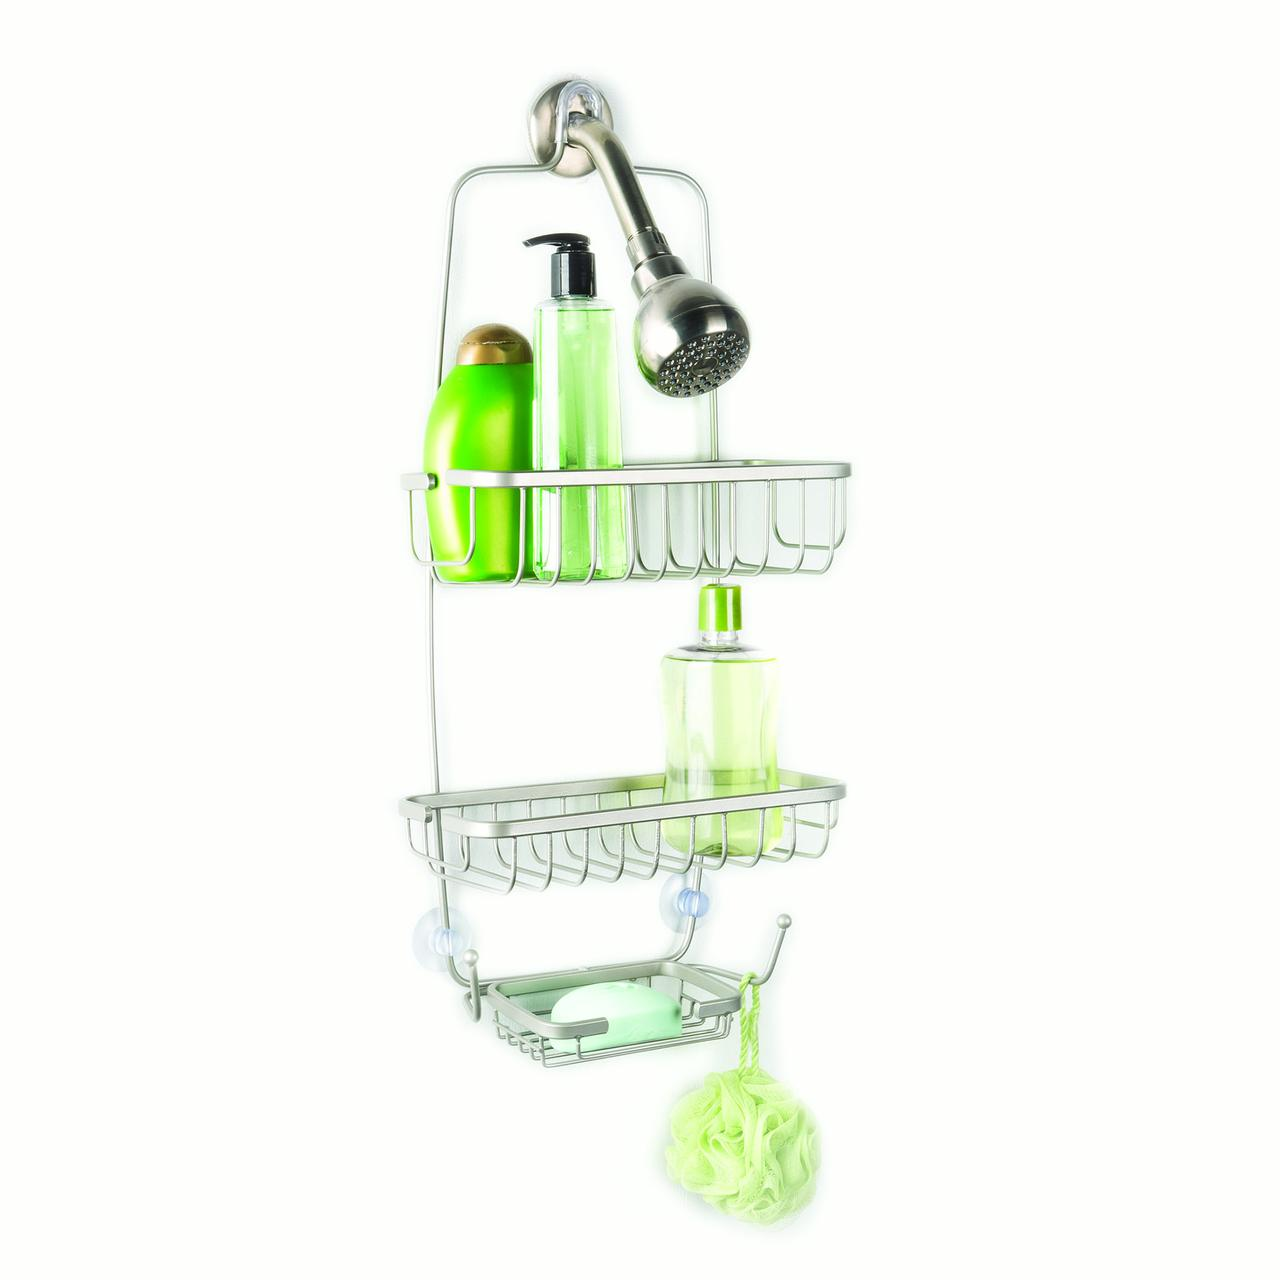 Over The Showerhead Two Tier Open Wire Shower Caddy With Soap Dish And 2 Hooks by Richards Homewares